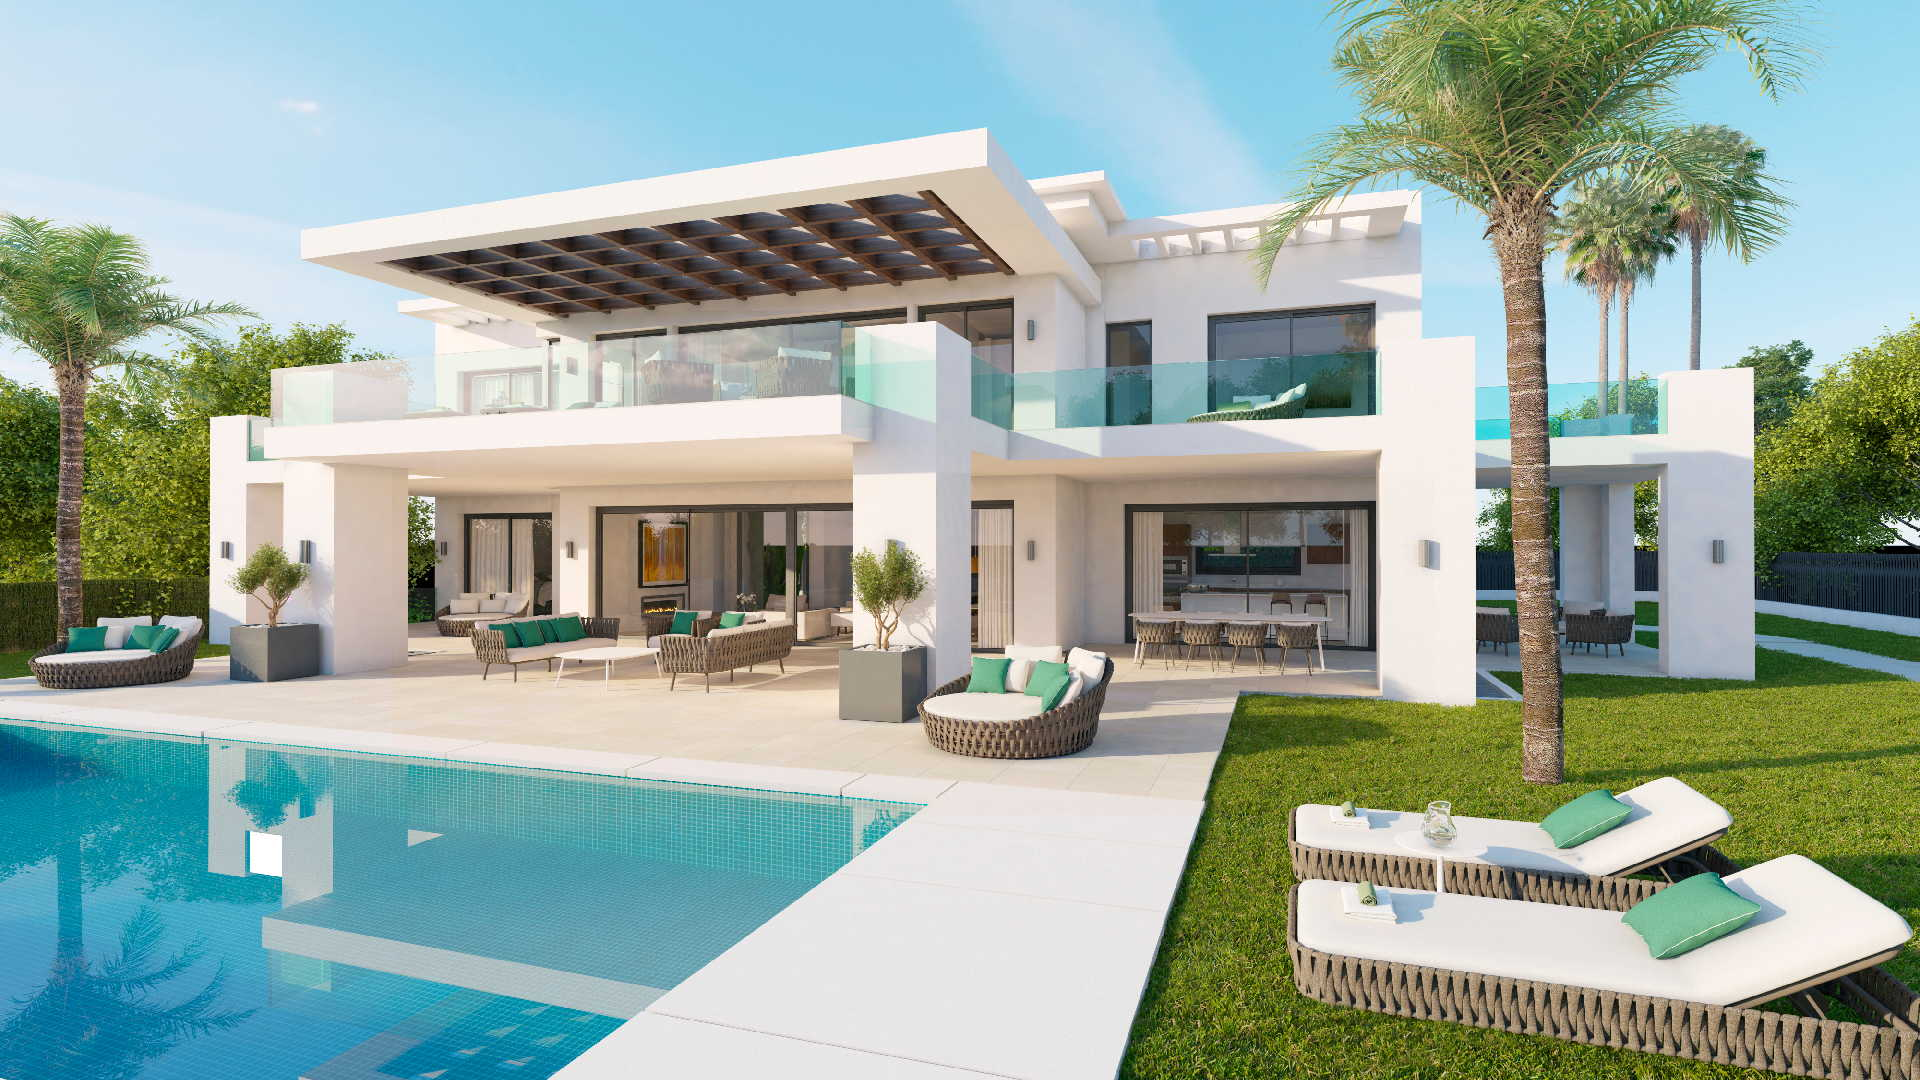 New villa in los olivos nueva andalucia marbella for sale for Maisons contemporaines de luxe